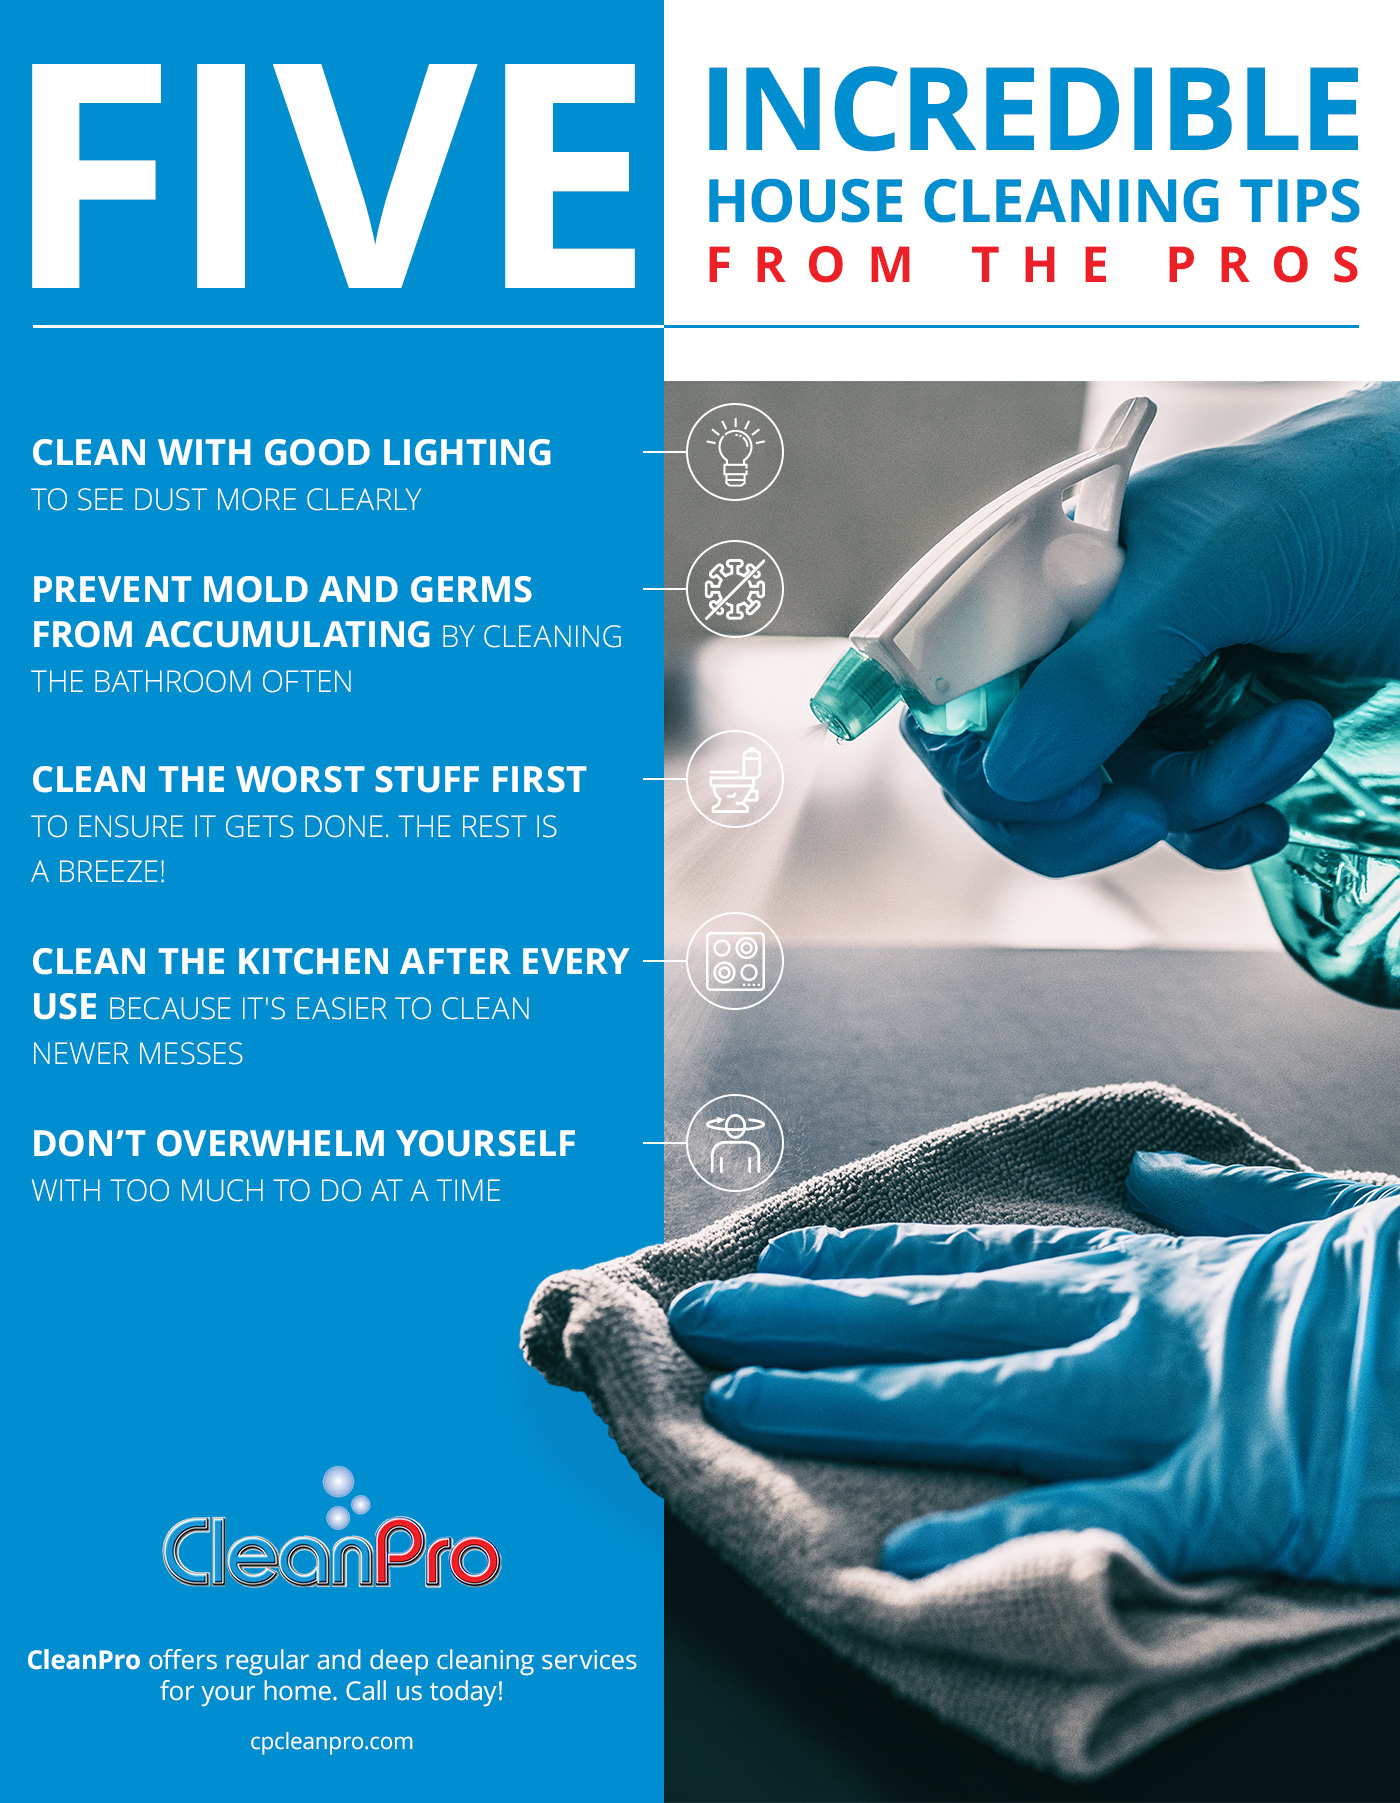 Five Incredible House Cleaning Tips